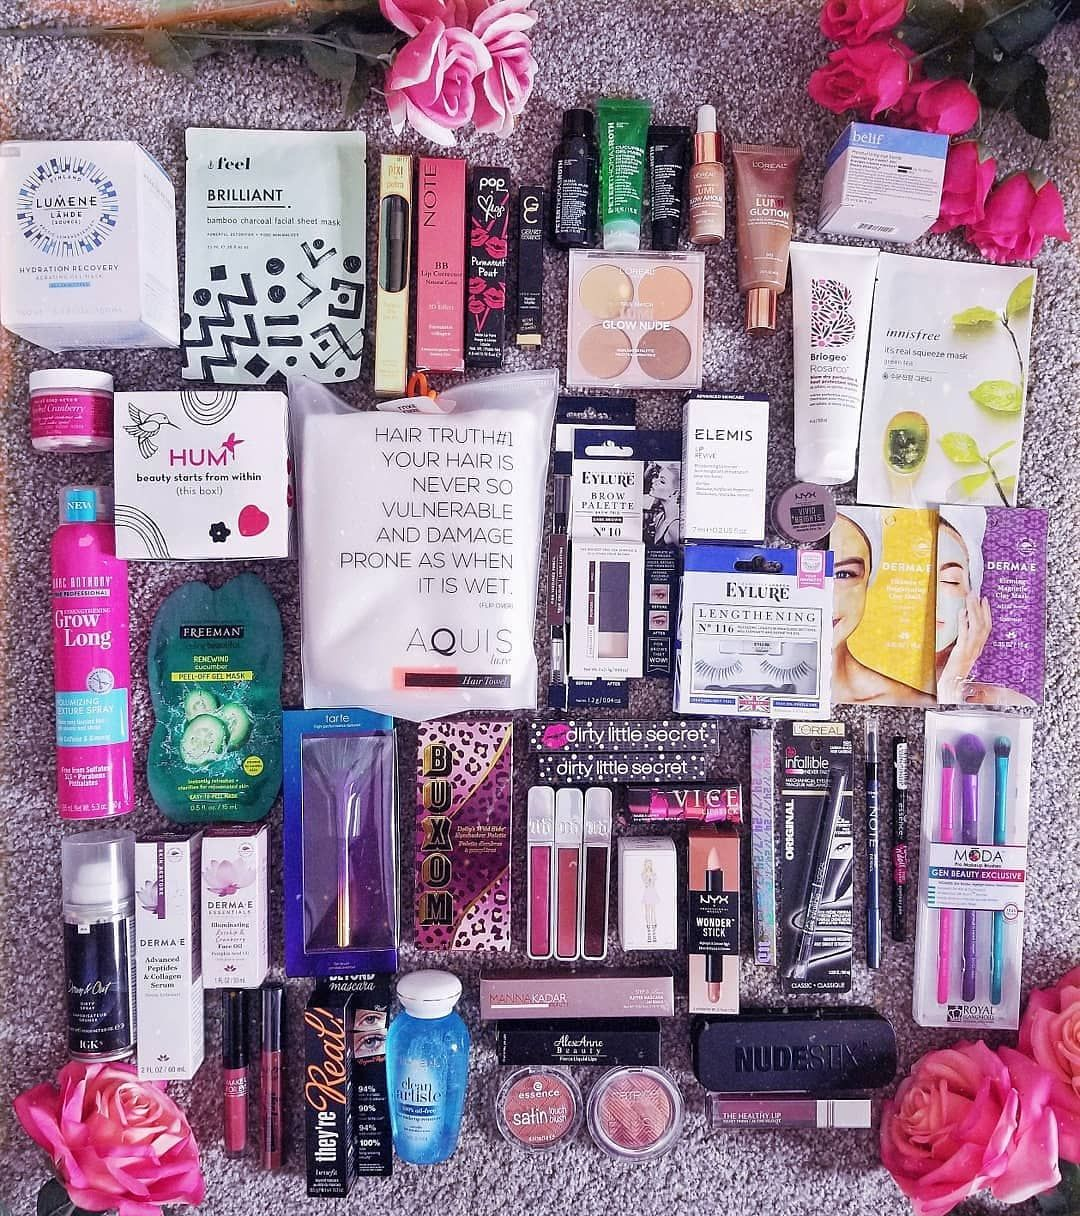 Huge Makeup Giveaway 2 Winners Ends April29th Enter To Win In 3 Easy Steps Click Photo To Enter On Instagram Giveawa Makeup Giveaway Makeup Makeup Haul